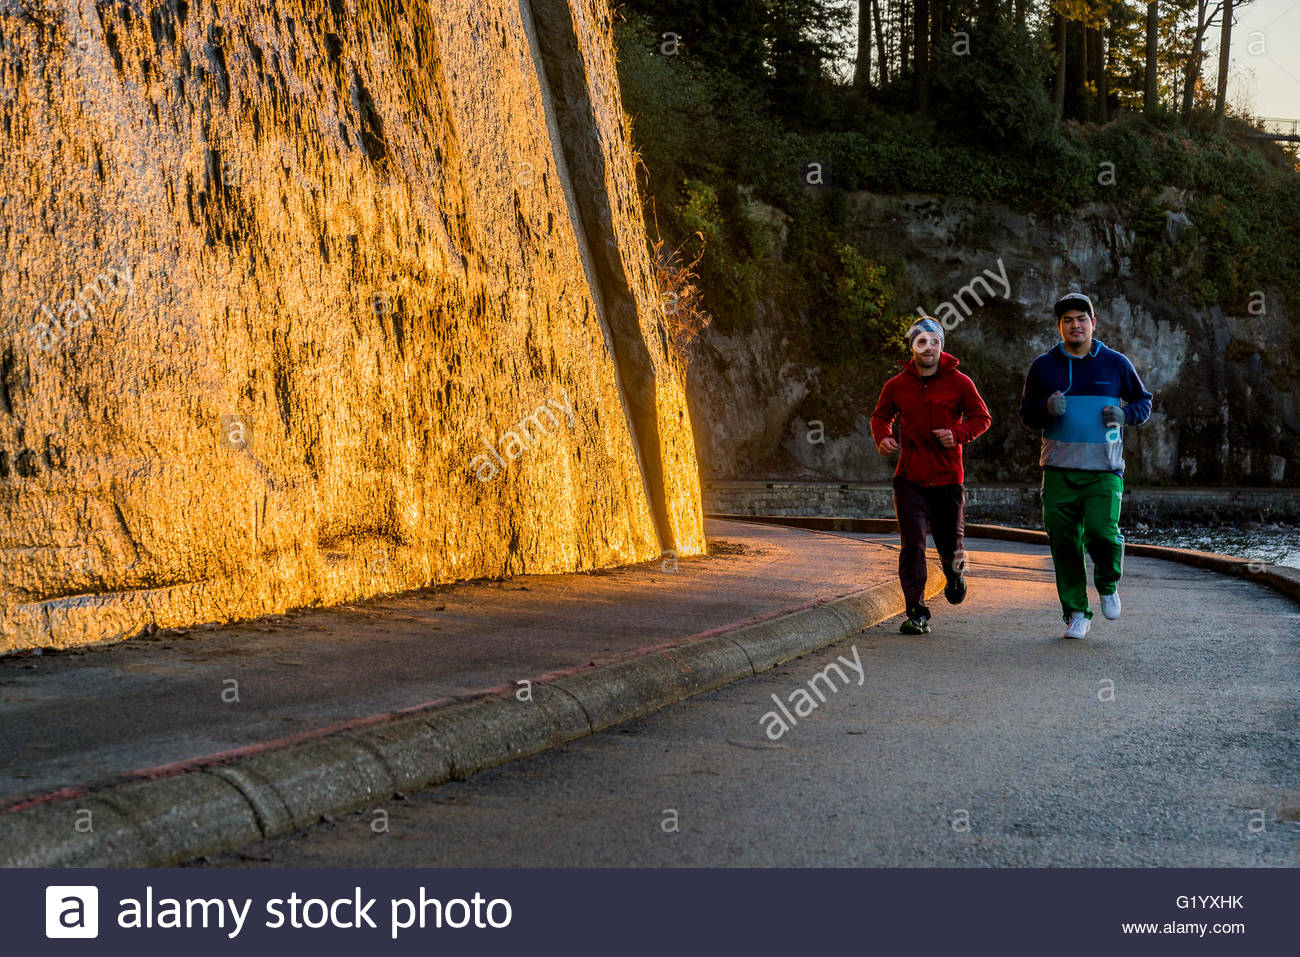 Joggers, Stanley Park seawall at sunset, Vancouver, British Columbia, Canada - Stock Image